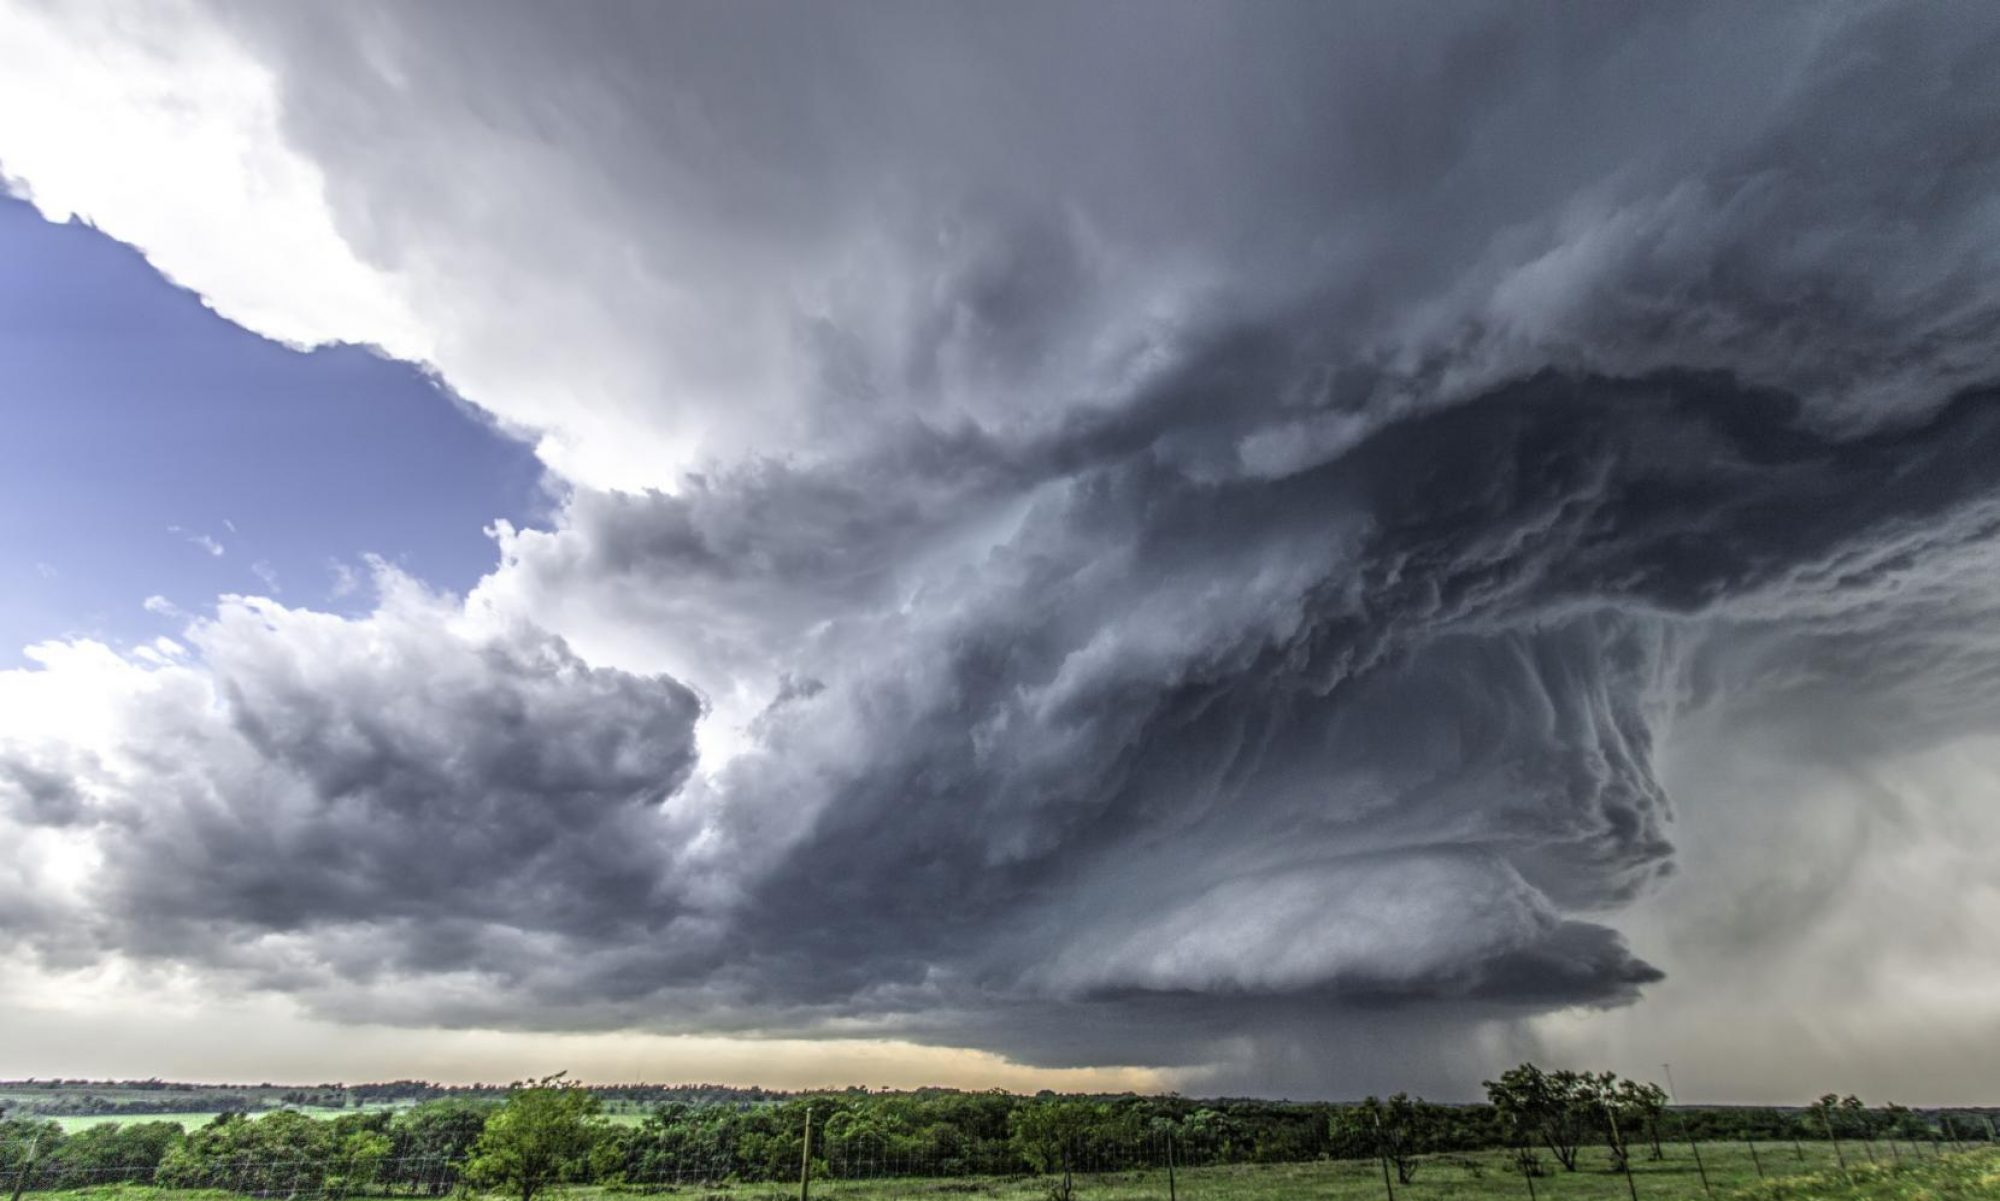 Climate and Meteorology Society at the University of Texas